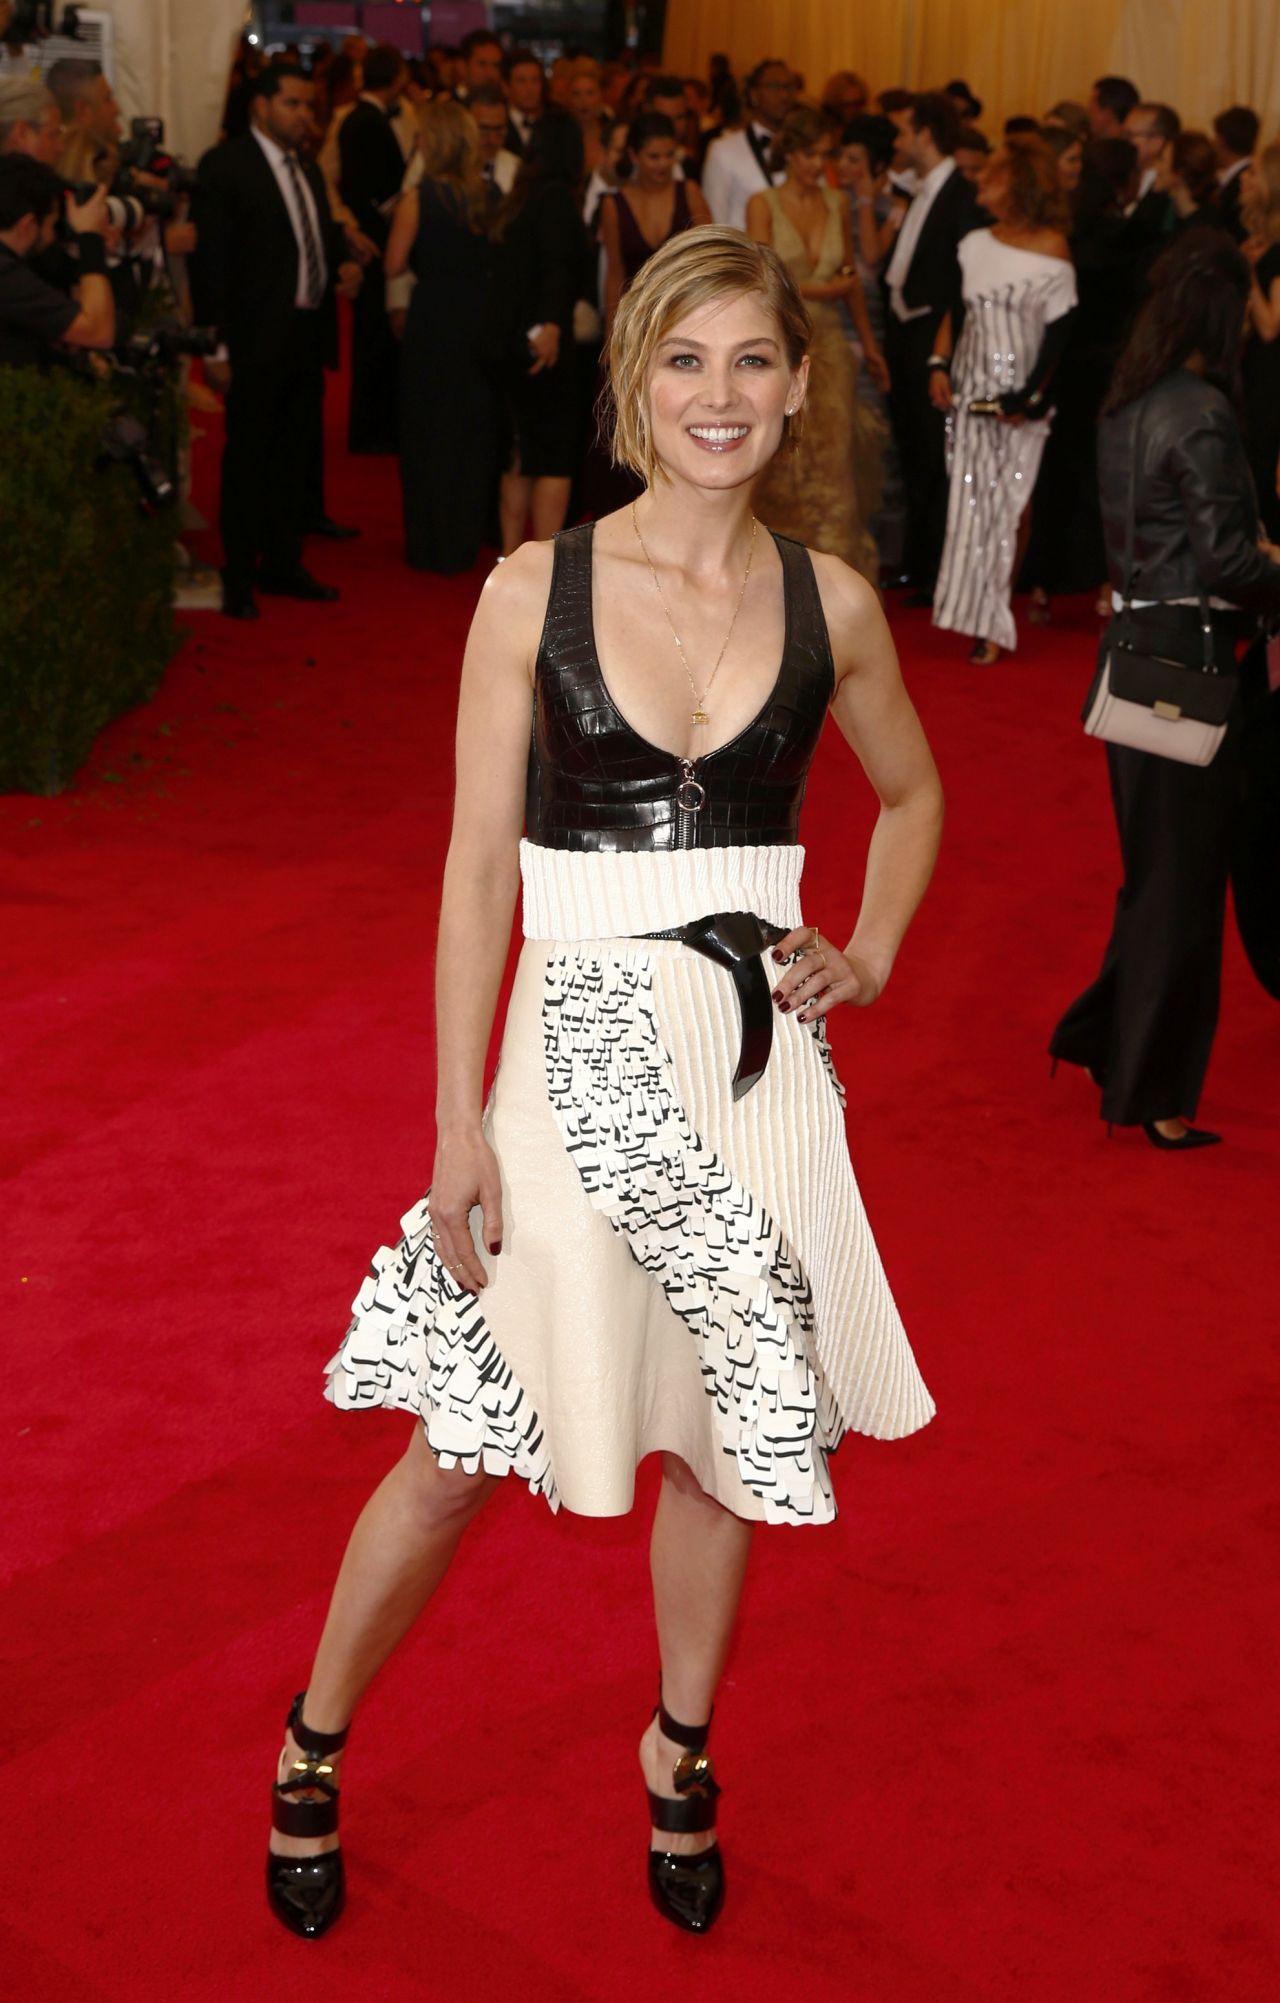 Rosamund Pike Wearing Louis Vuitton – 2014 Met Costume ...Rosamund Pike 2014